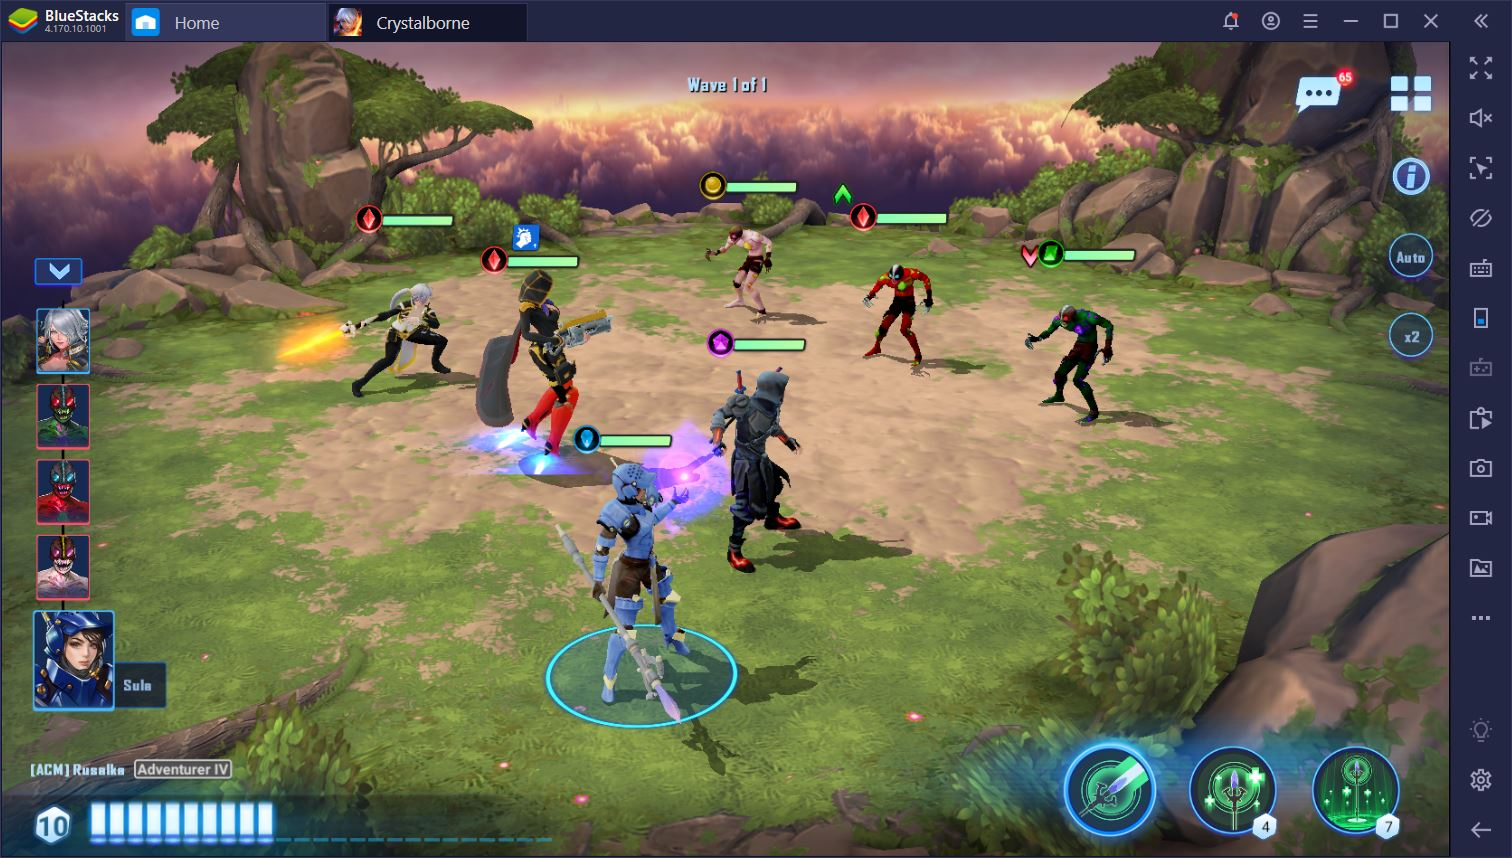 Crystalborne: Heroes of Fate on PC – The Complete Guide to Combat